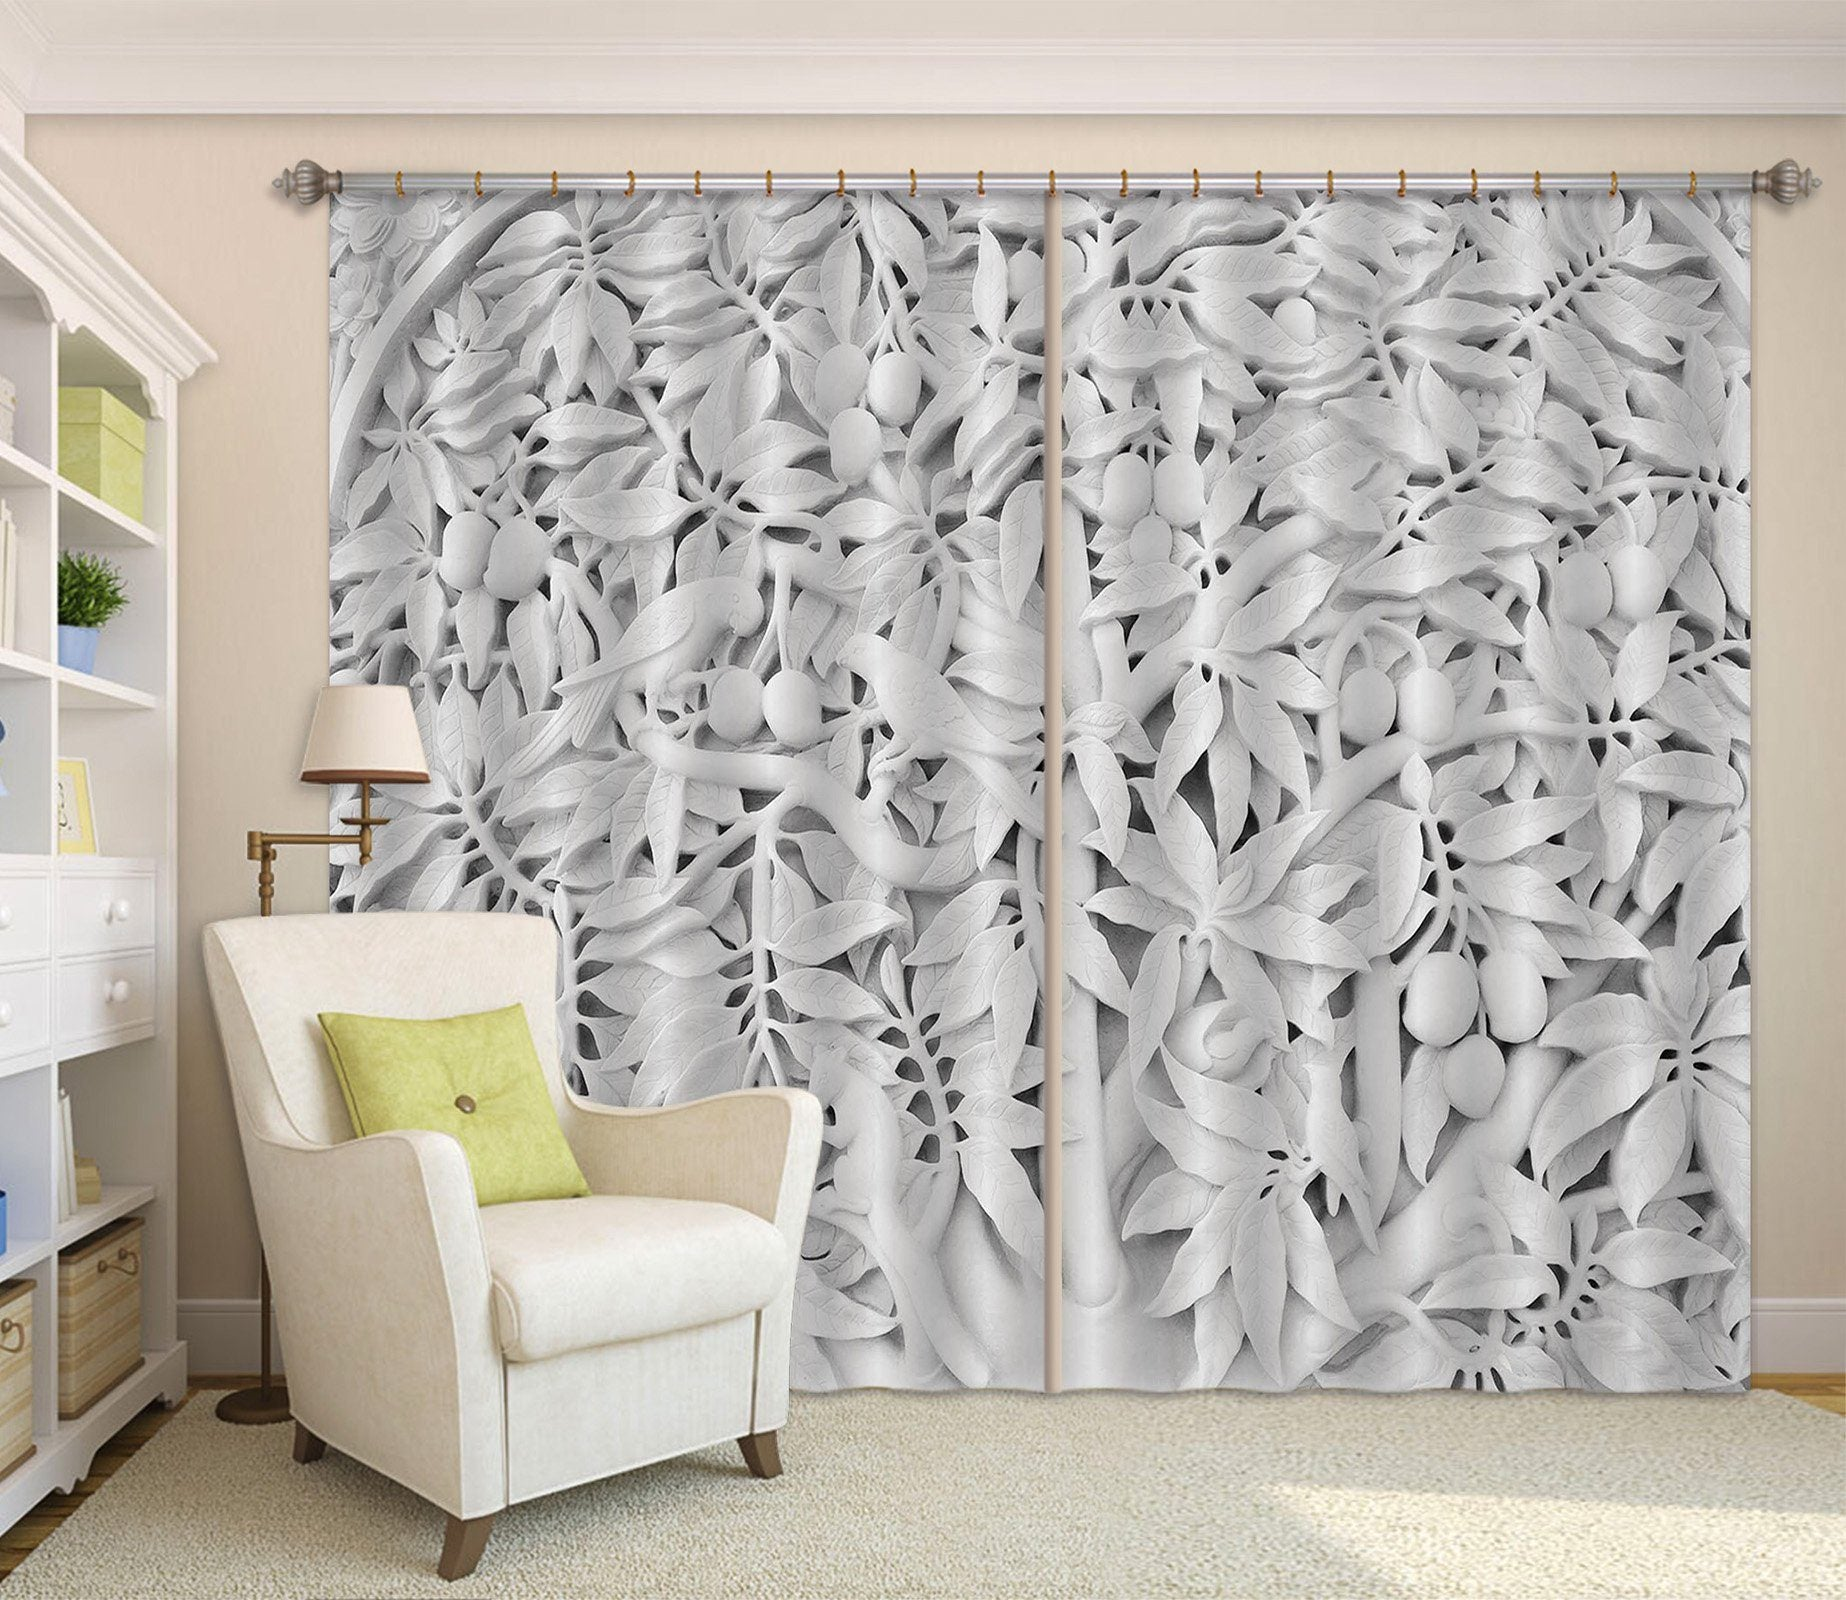 3D Bird Leaf Fruit 069 Curtains Drapes Curtains AJ Creativity Home